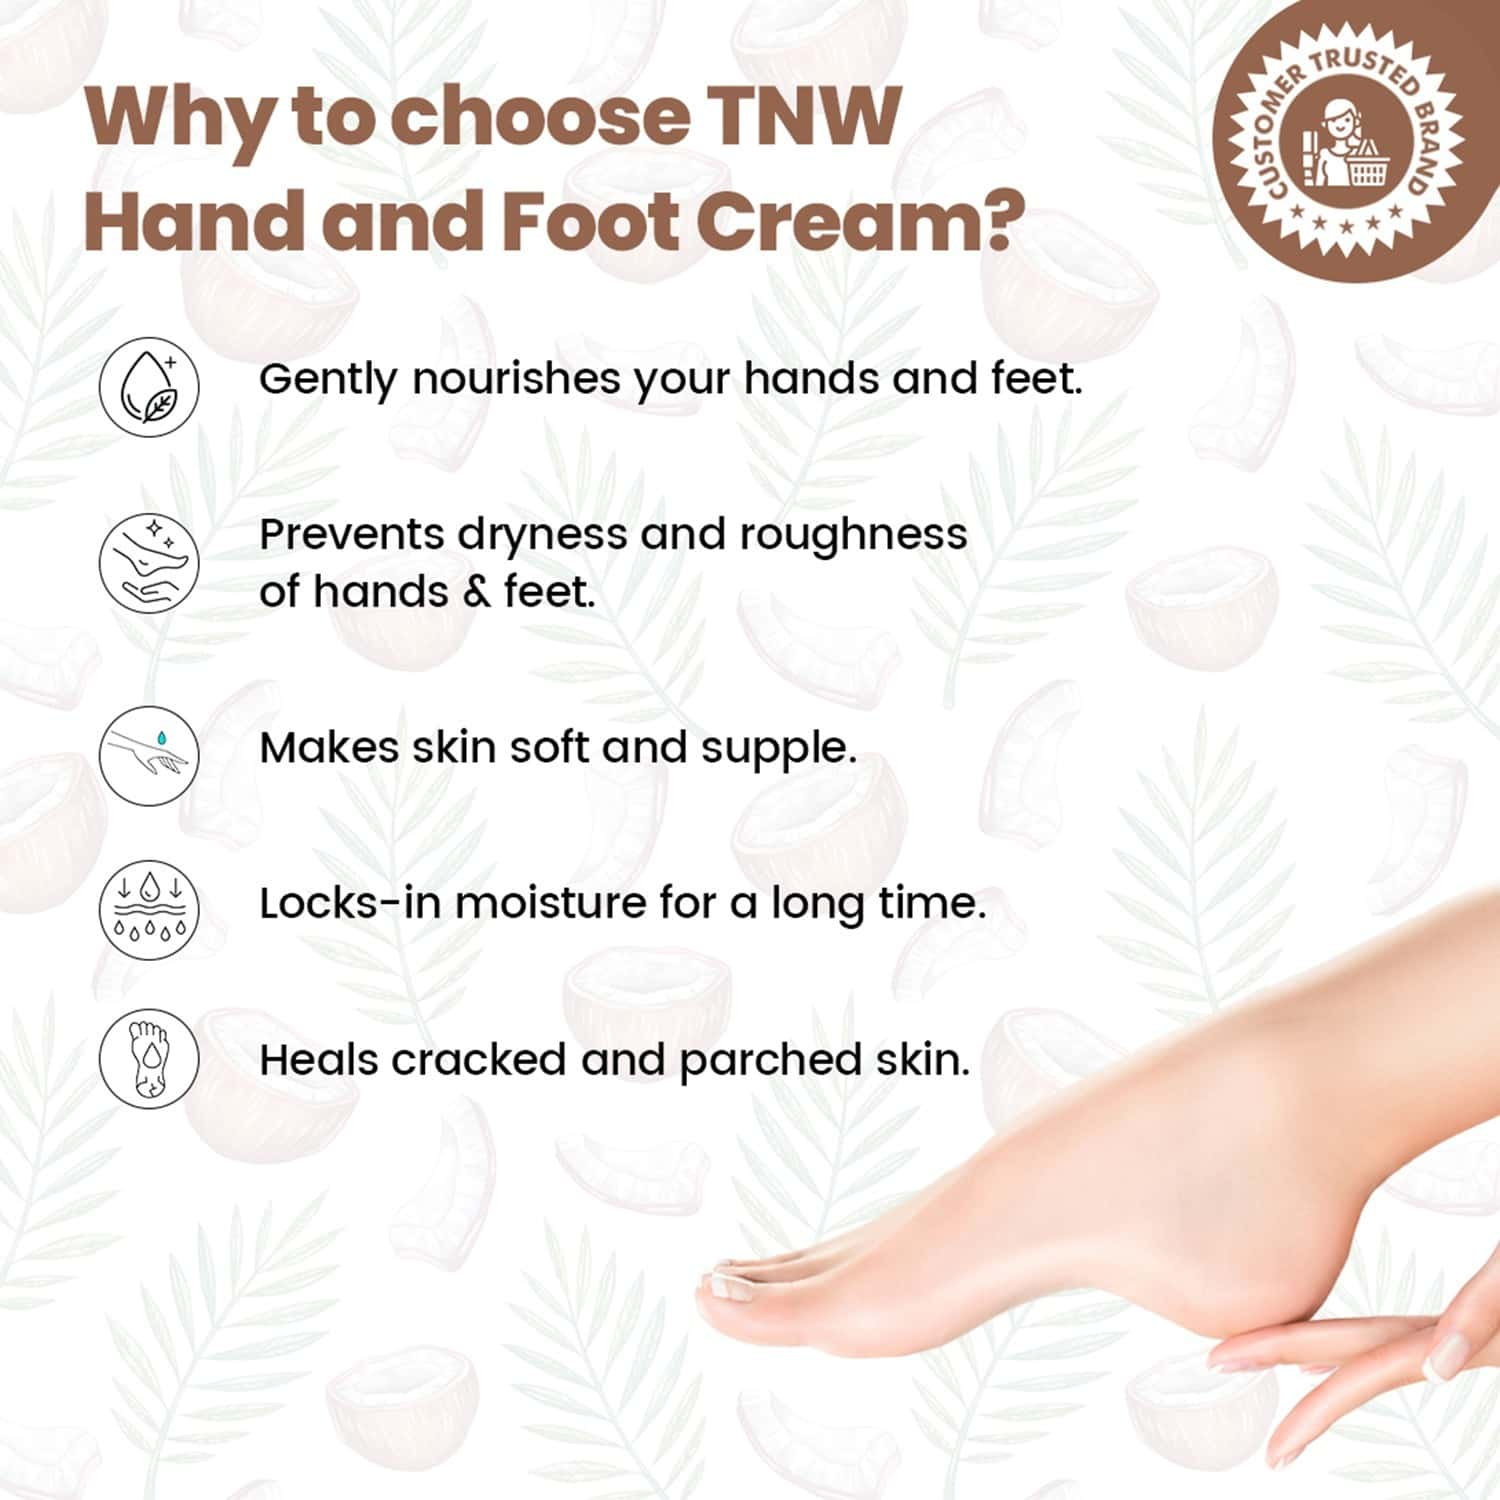 Tnw The Natural Wash Hand And Foot Cream For Nourished Hand & Feet - 50 Ml